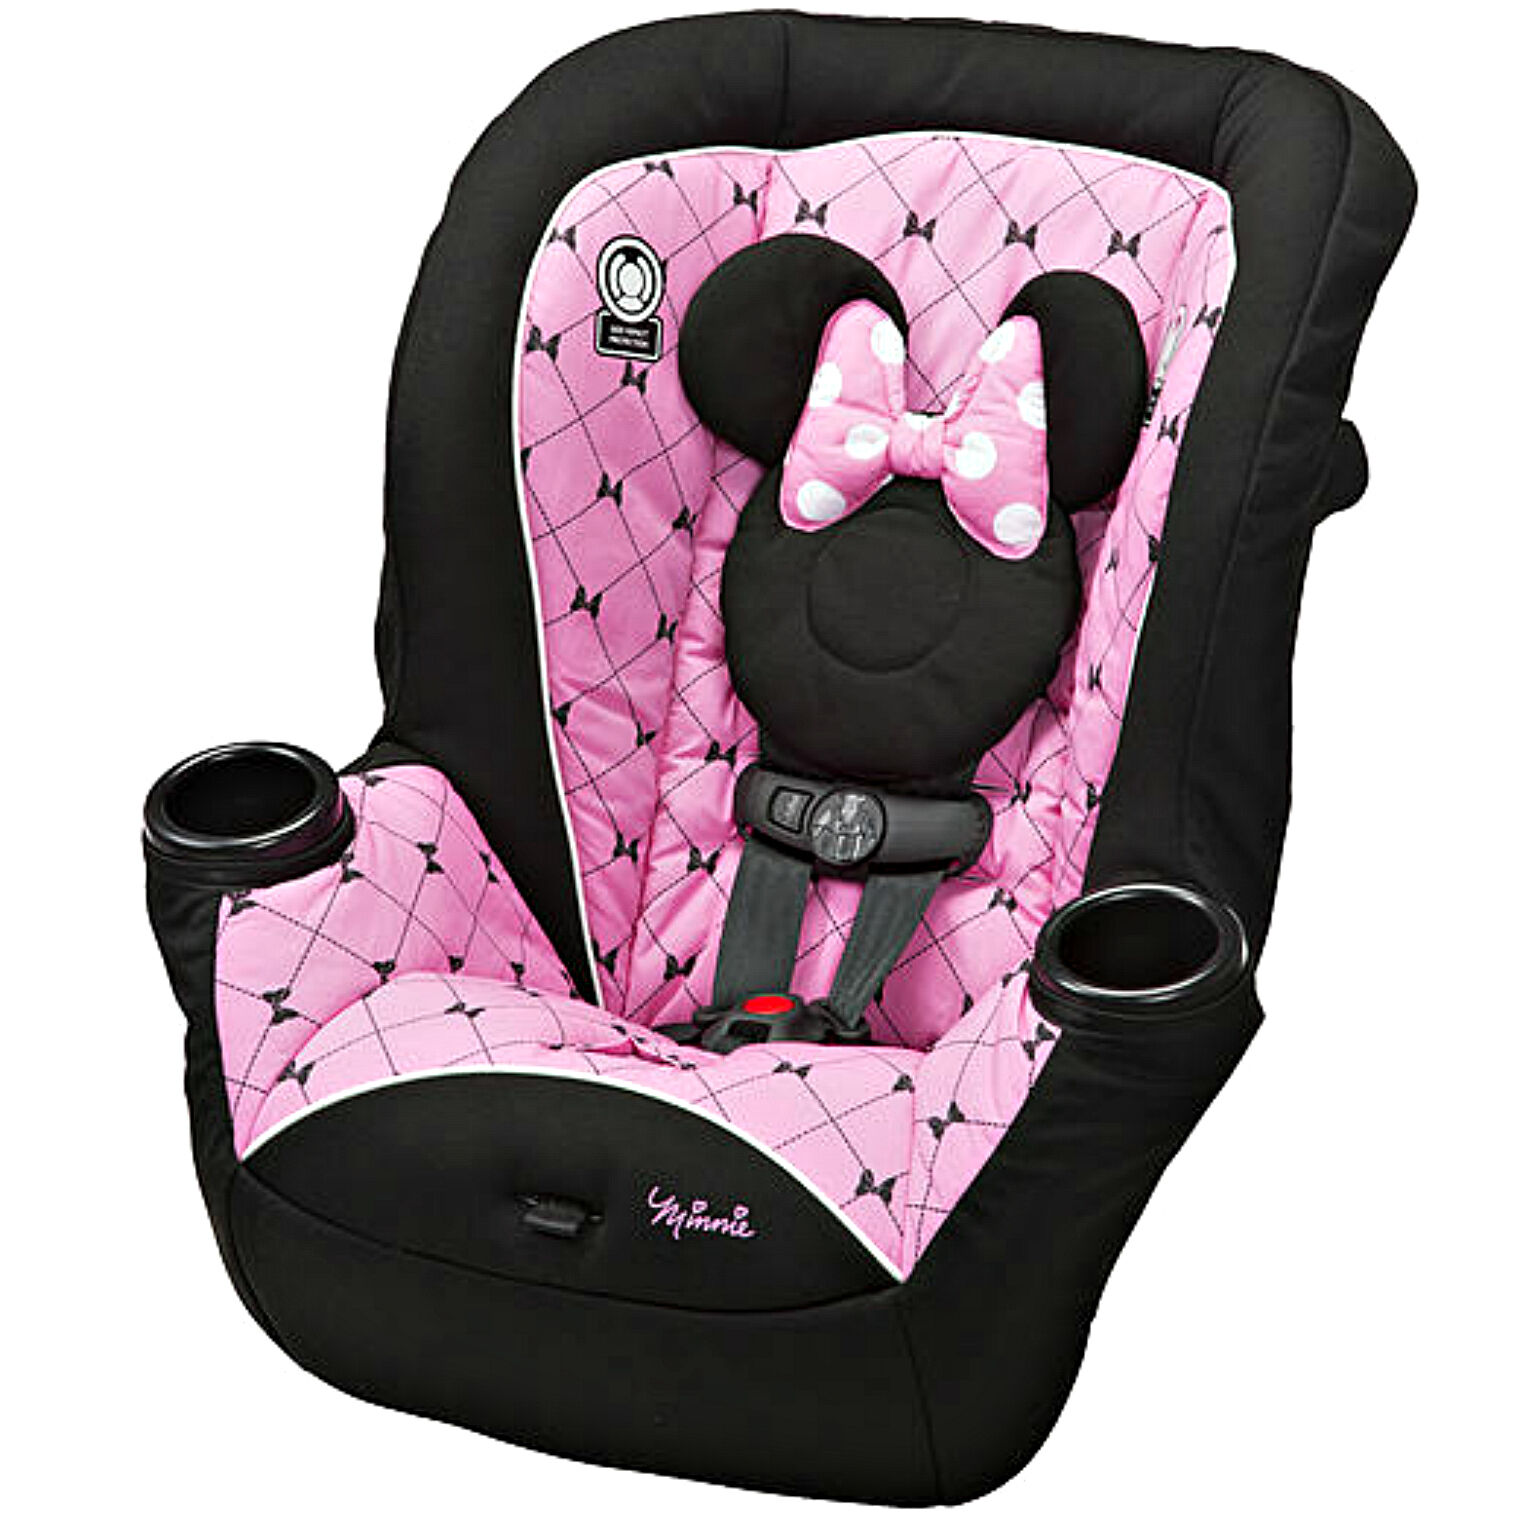 Minnie Mouse Convertible Baby Car Seat Toddler Safe